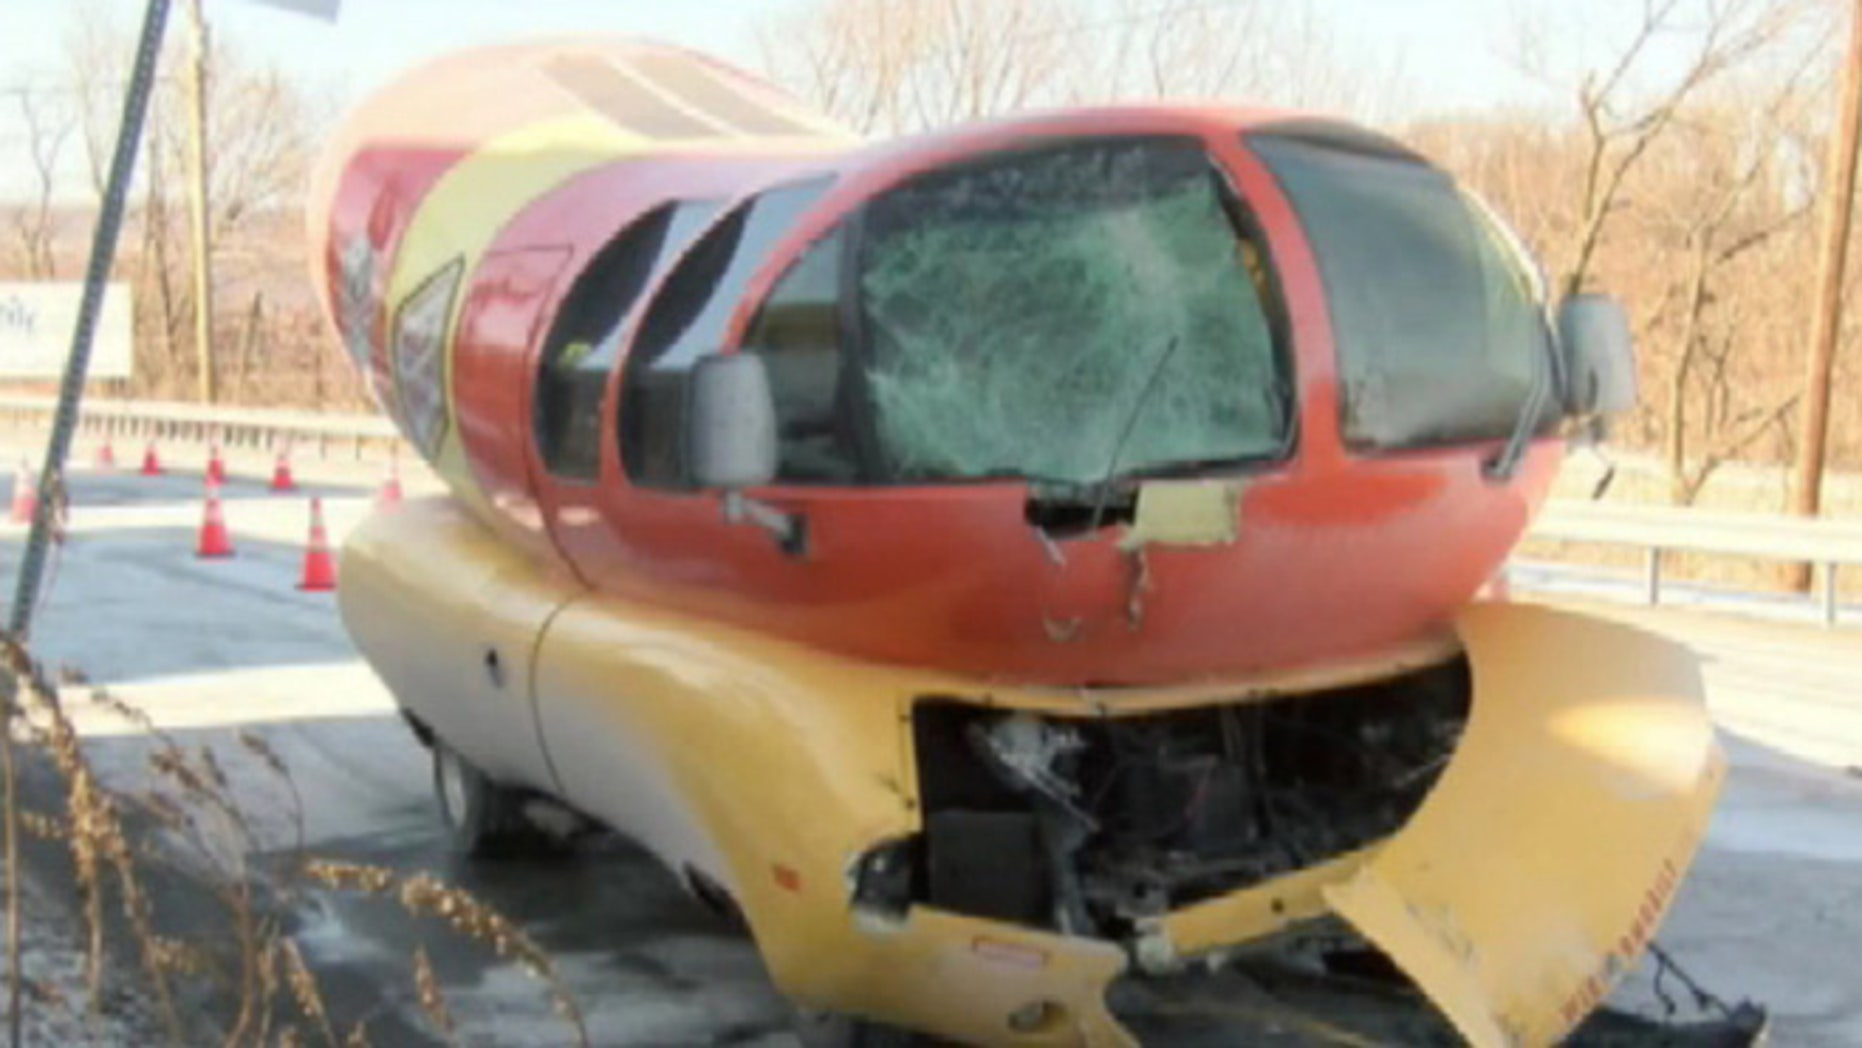 This dog had its day.  Officials say the giant hot dog on wheels slid off a road and slammed into a pole.